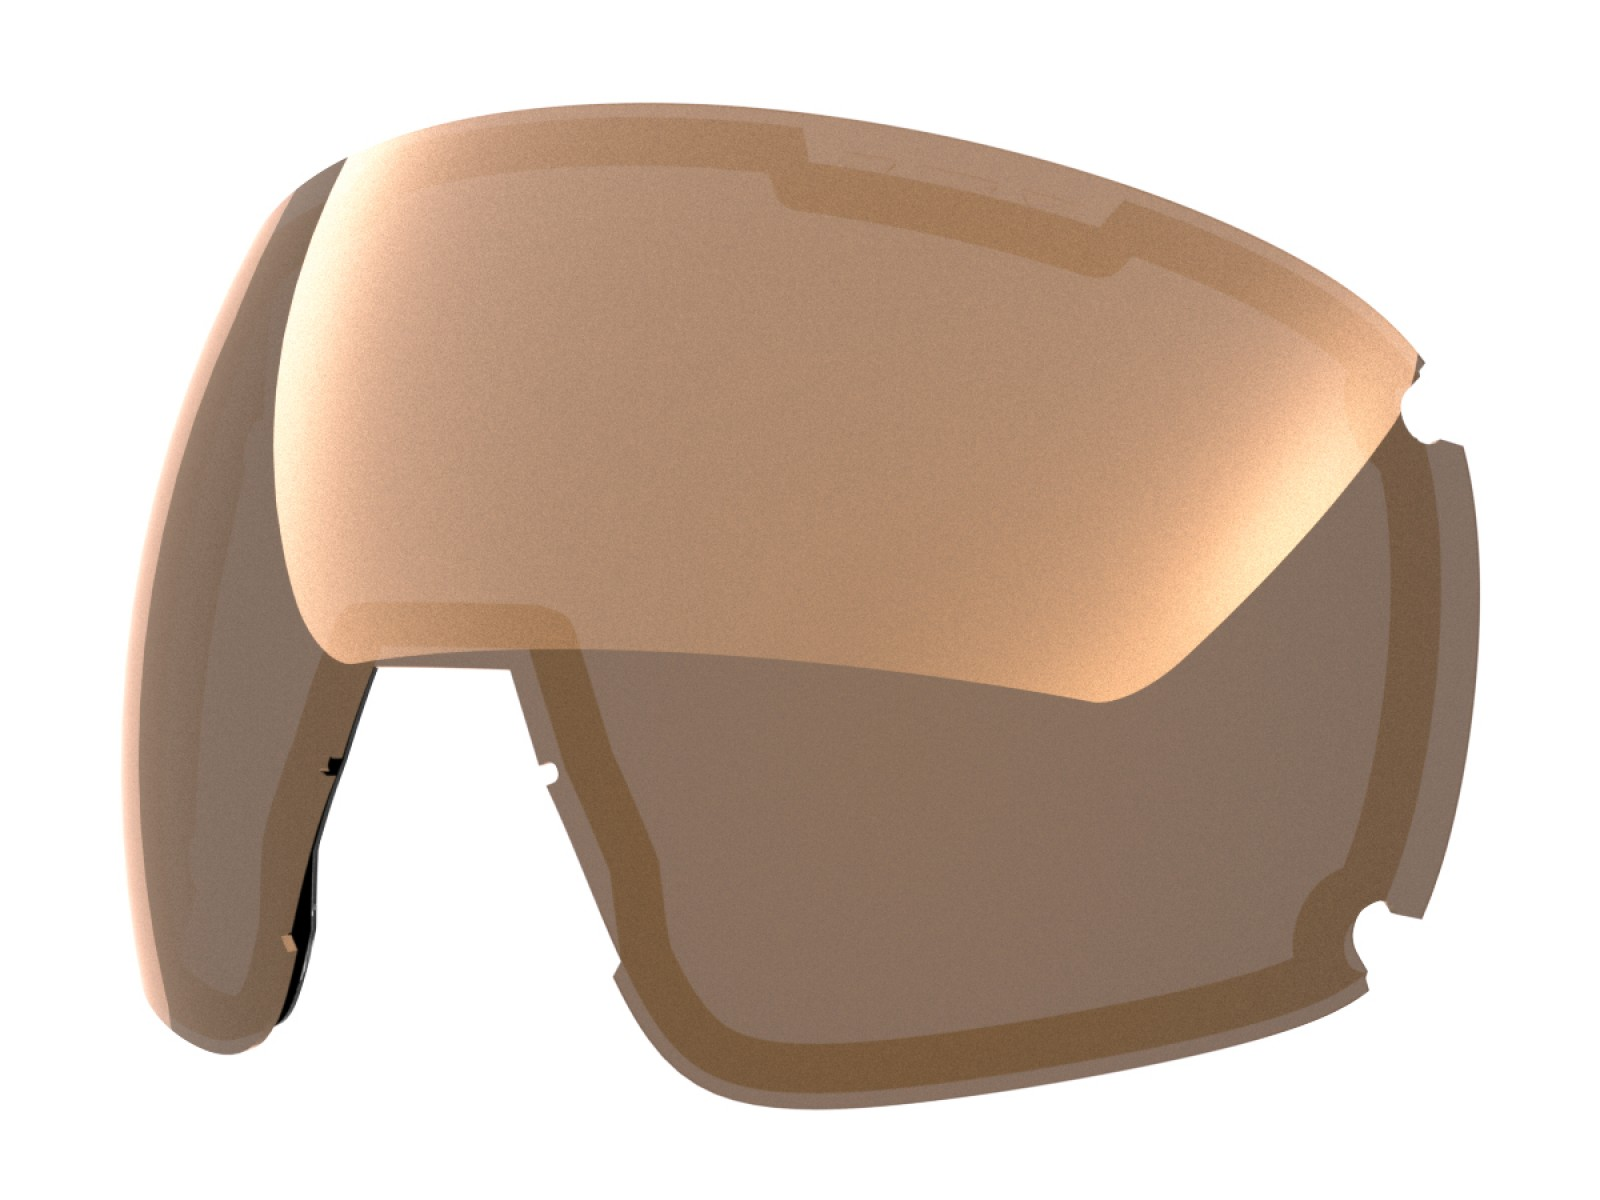 GOLD24 MCI LENS FOR EARTH SNOW GOGGLE